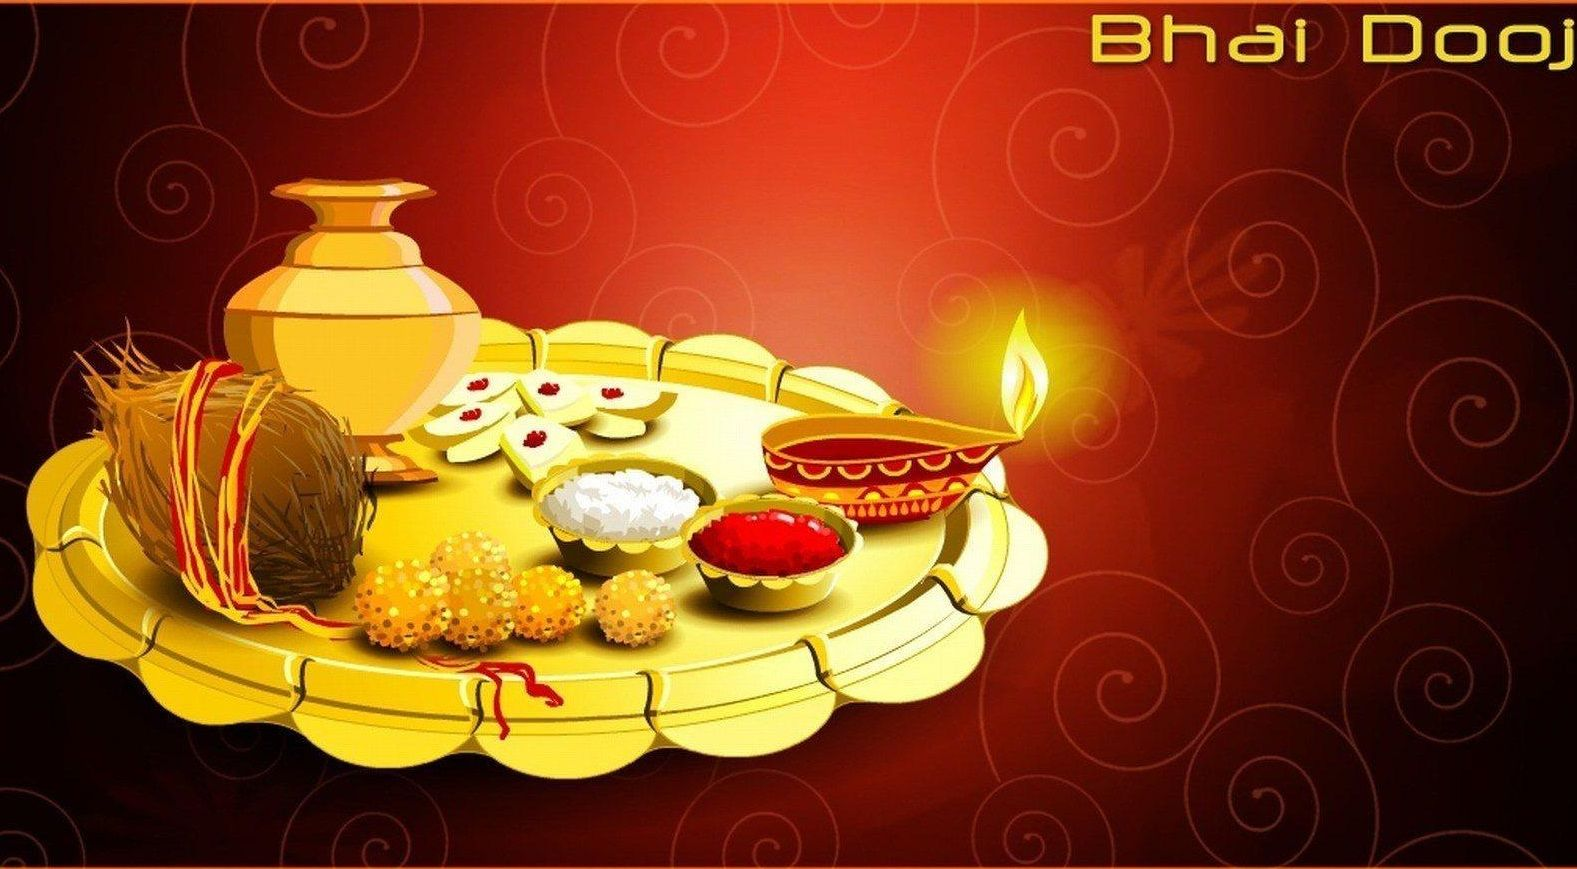 Bhai Dooj Celebrating bond between brother and sister